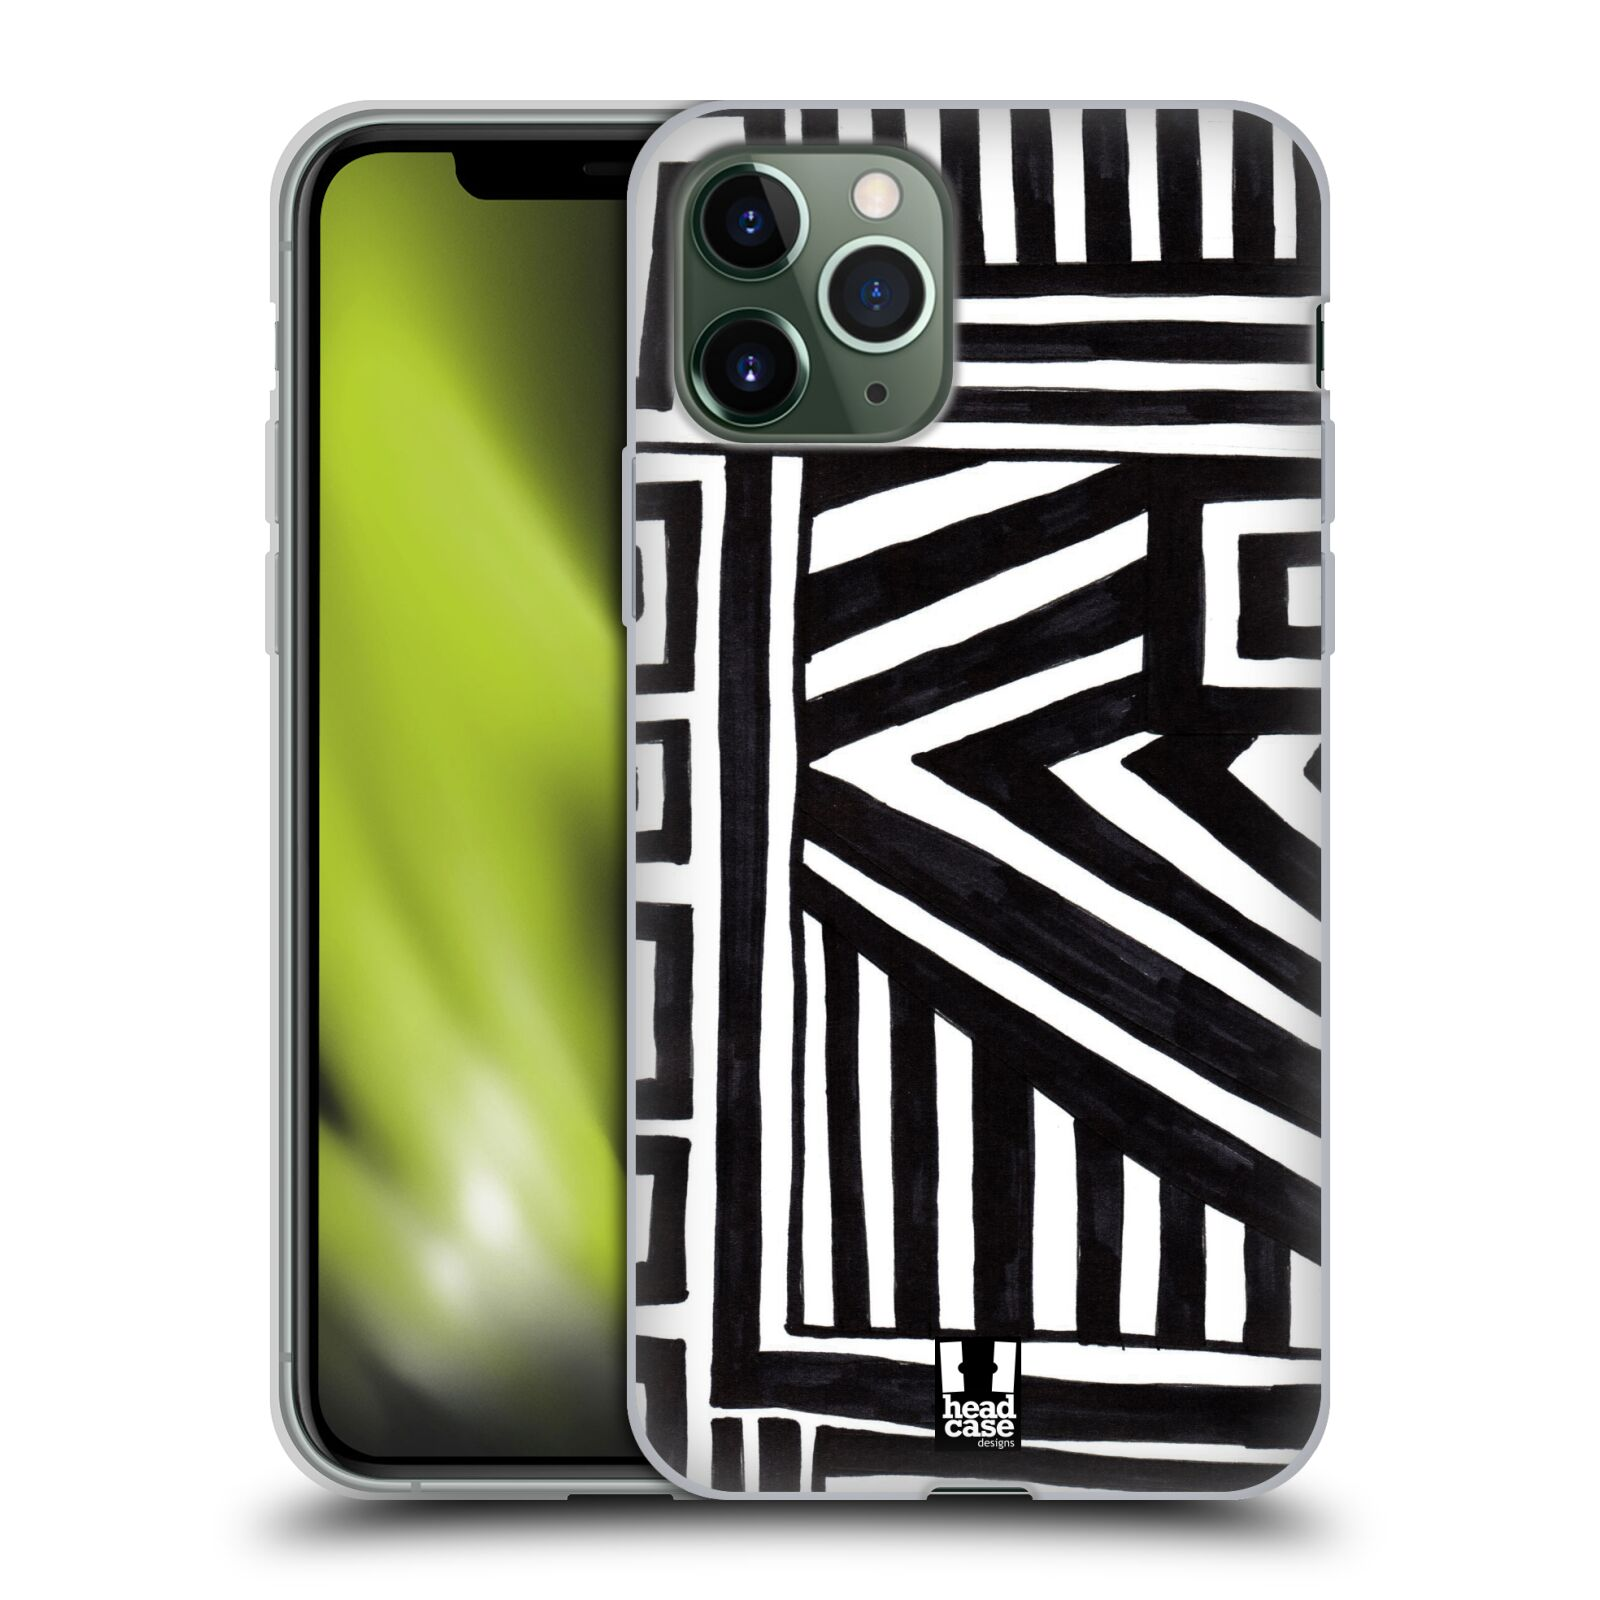 world of warcraft kryt na mobil | Silikonové pouzdro na mobil Apple iPhone 11 Pro - Head Case - DOODLE GEOMETRIC